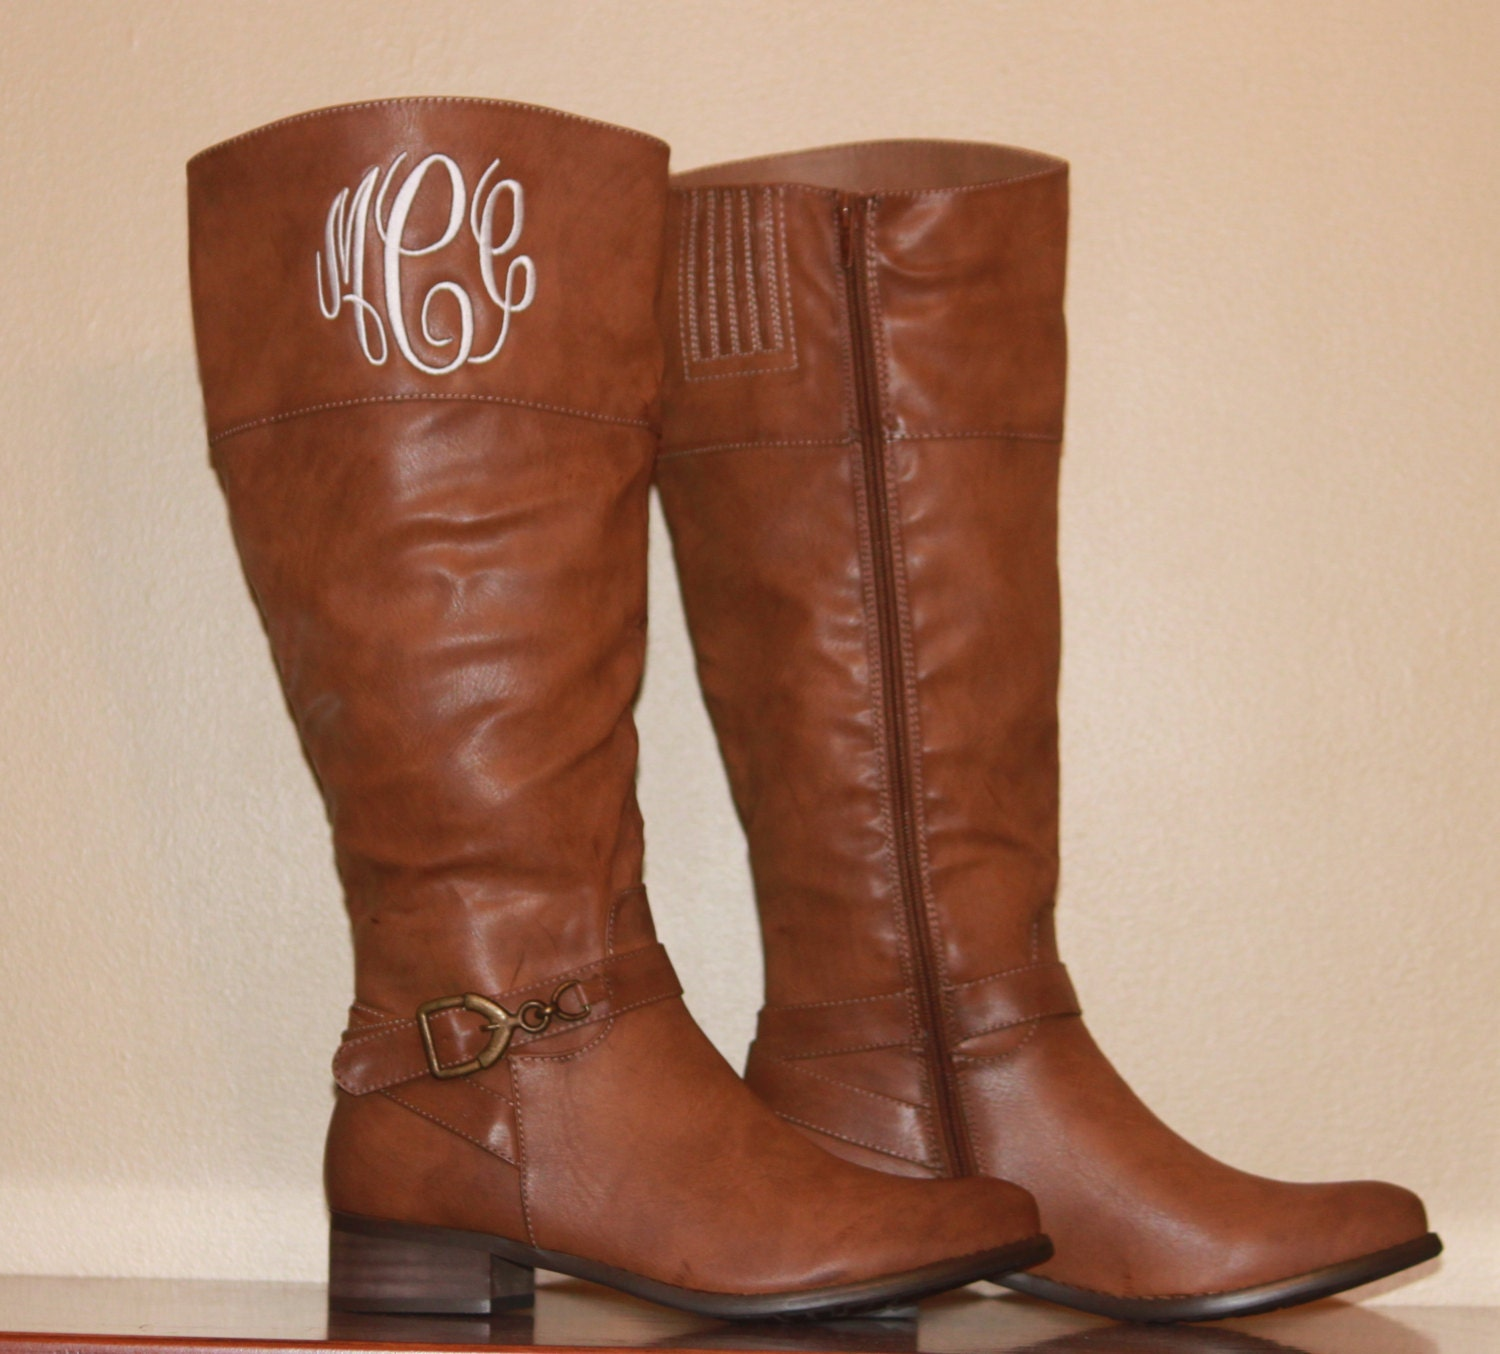 Monogram Personalized Quilted Boots Tall Women S Leather